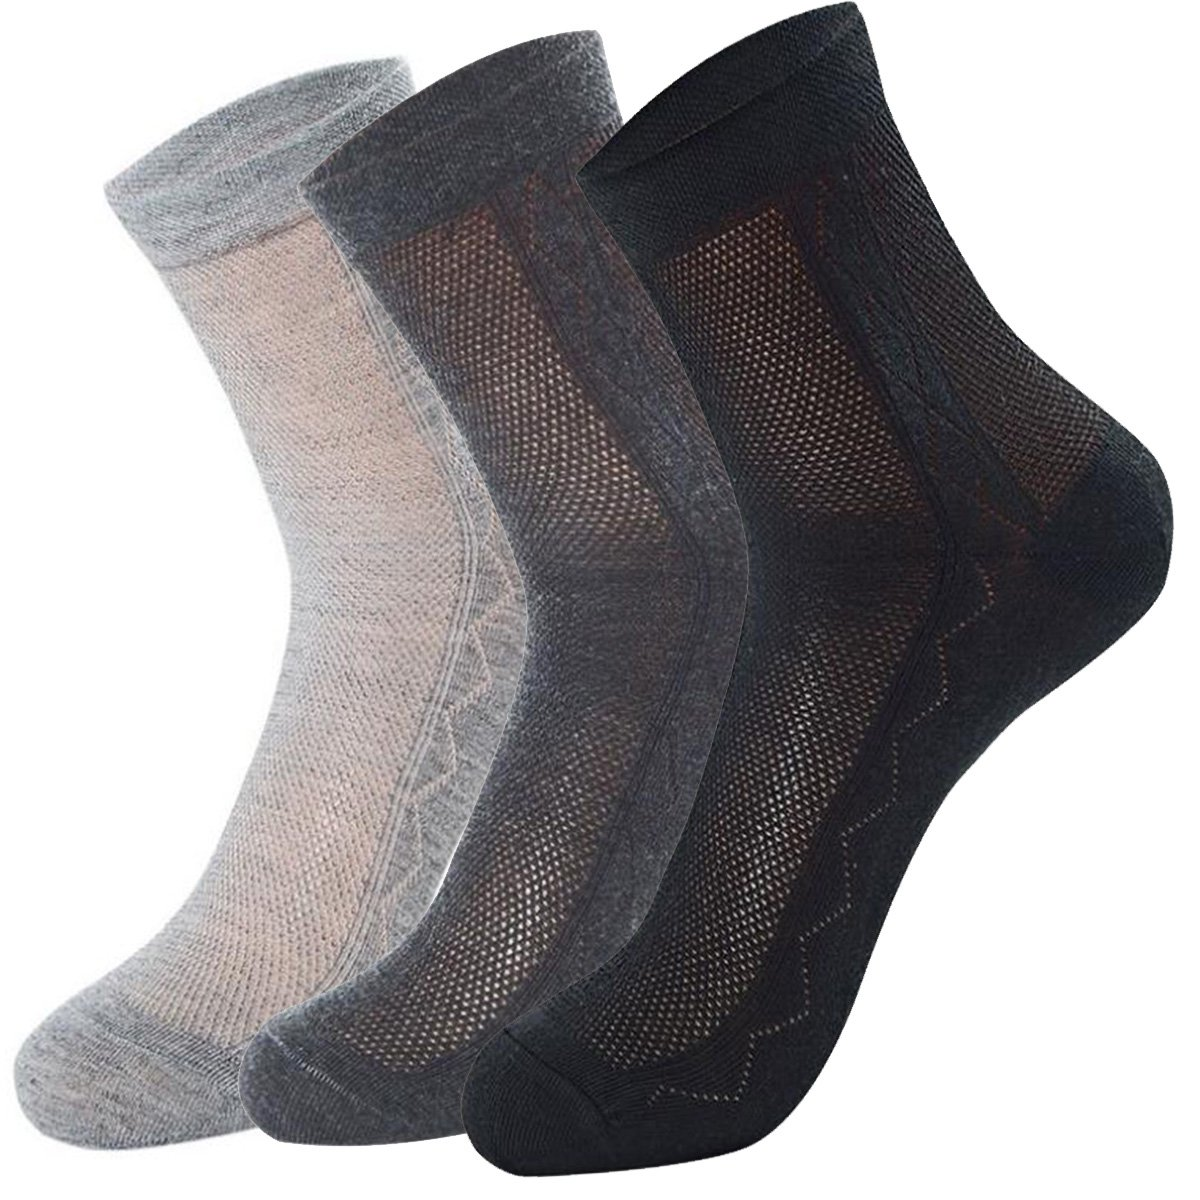 Ultra Thin Summer Cotton Socks for Men Breathable Diabetic Dress Socks Ankle Length 3 Mix Pairs in Pack